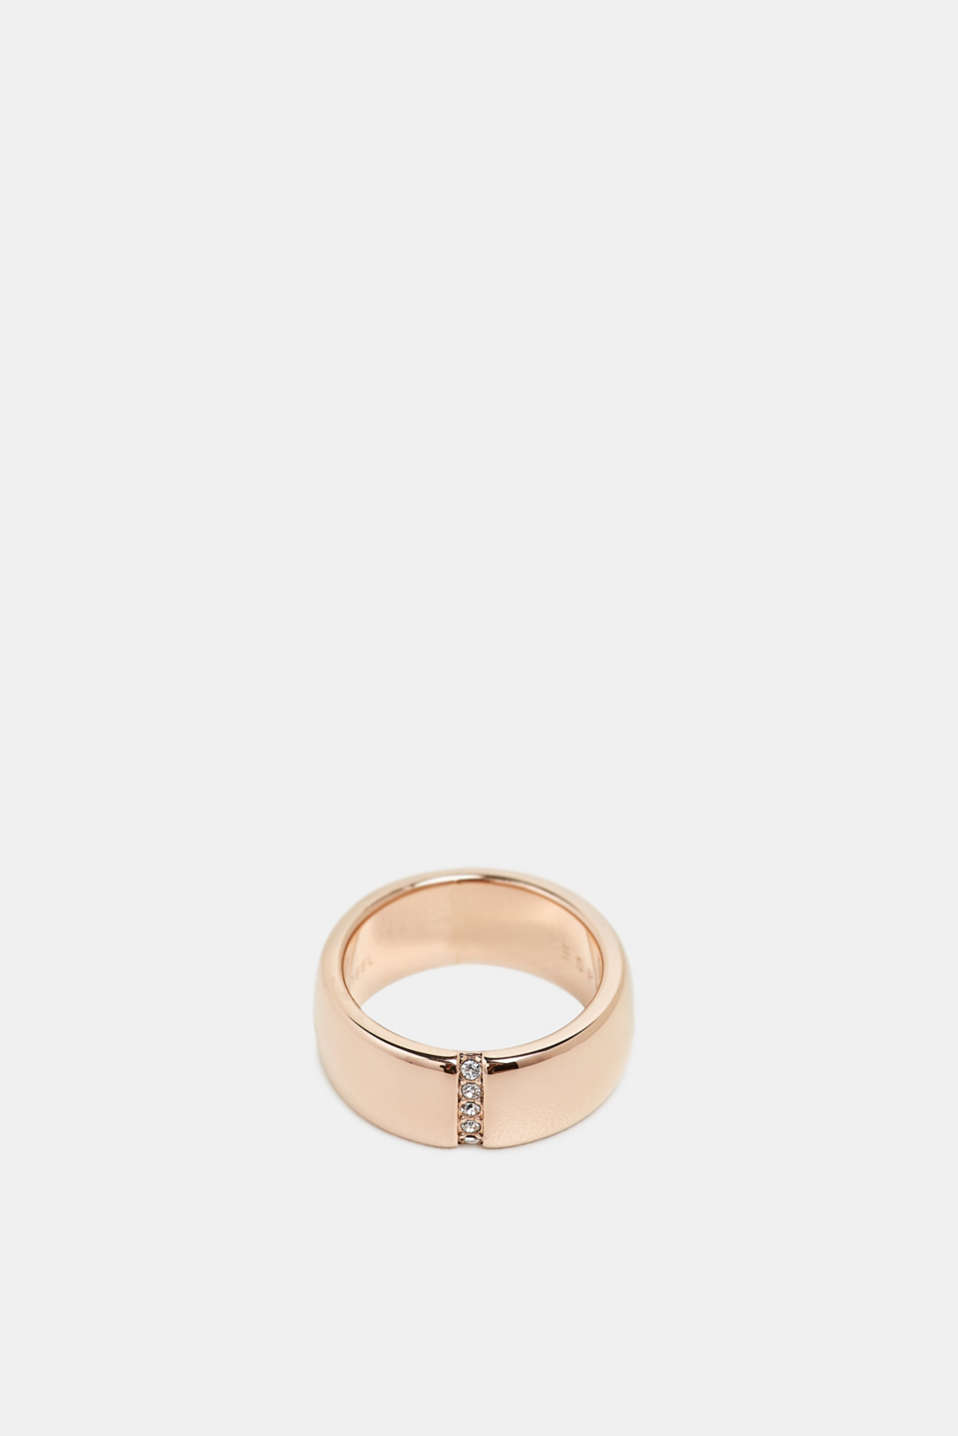 Ring with a row of zirconia, stainless steel, ROSEGOLD, detail image number 1